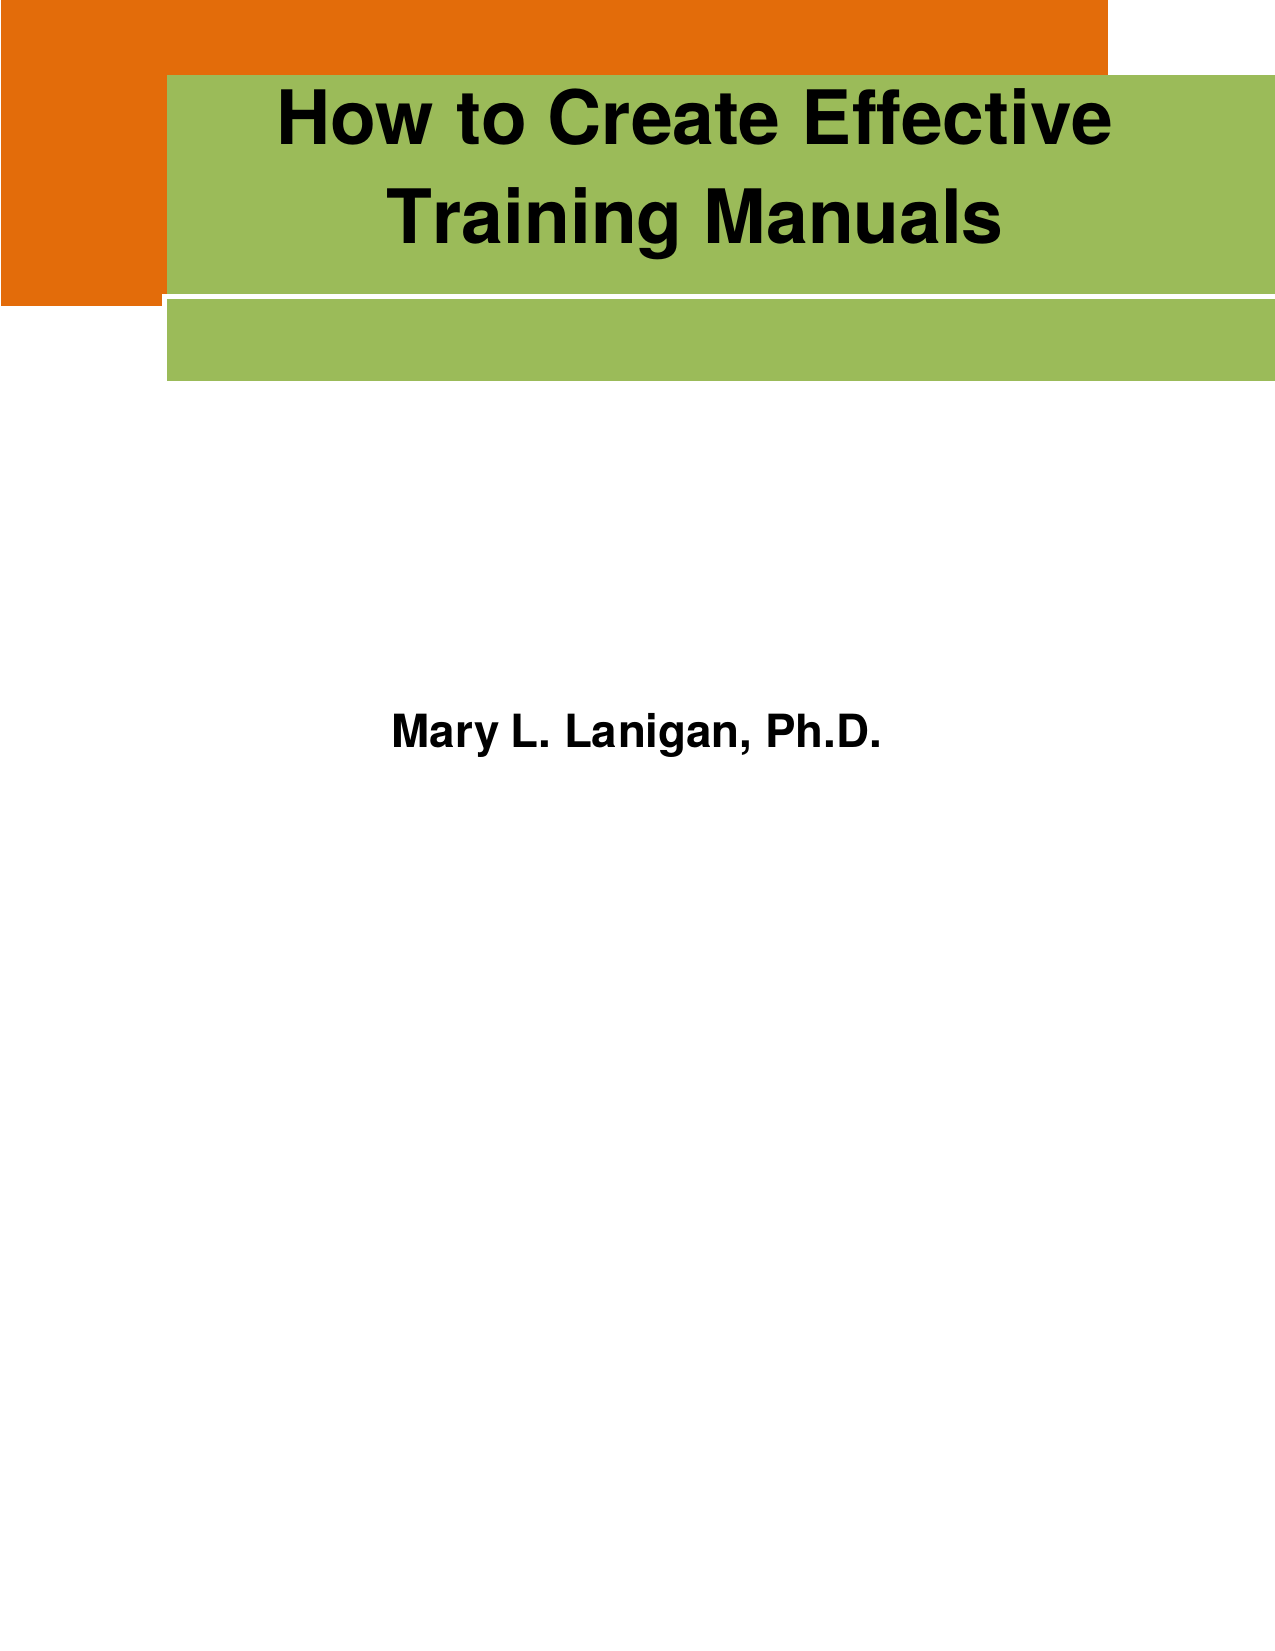 How To Create Effective Training Manuals